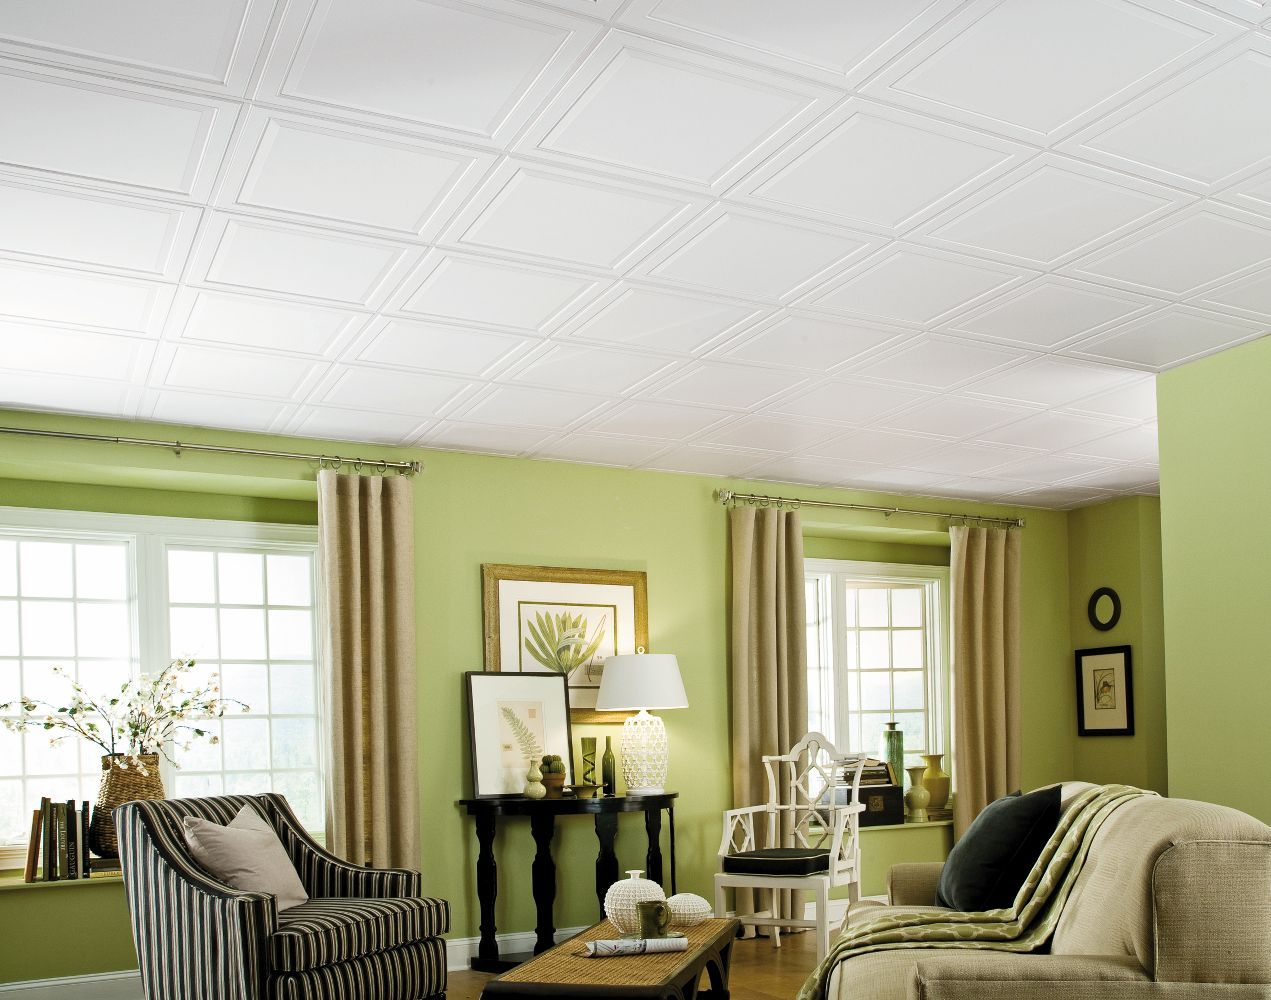 1210 Single Raised Panel Is A Paintable Ceilings By Armstrong The